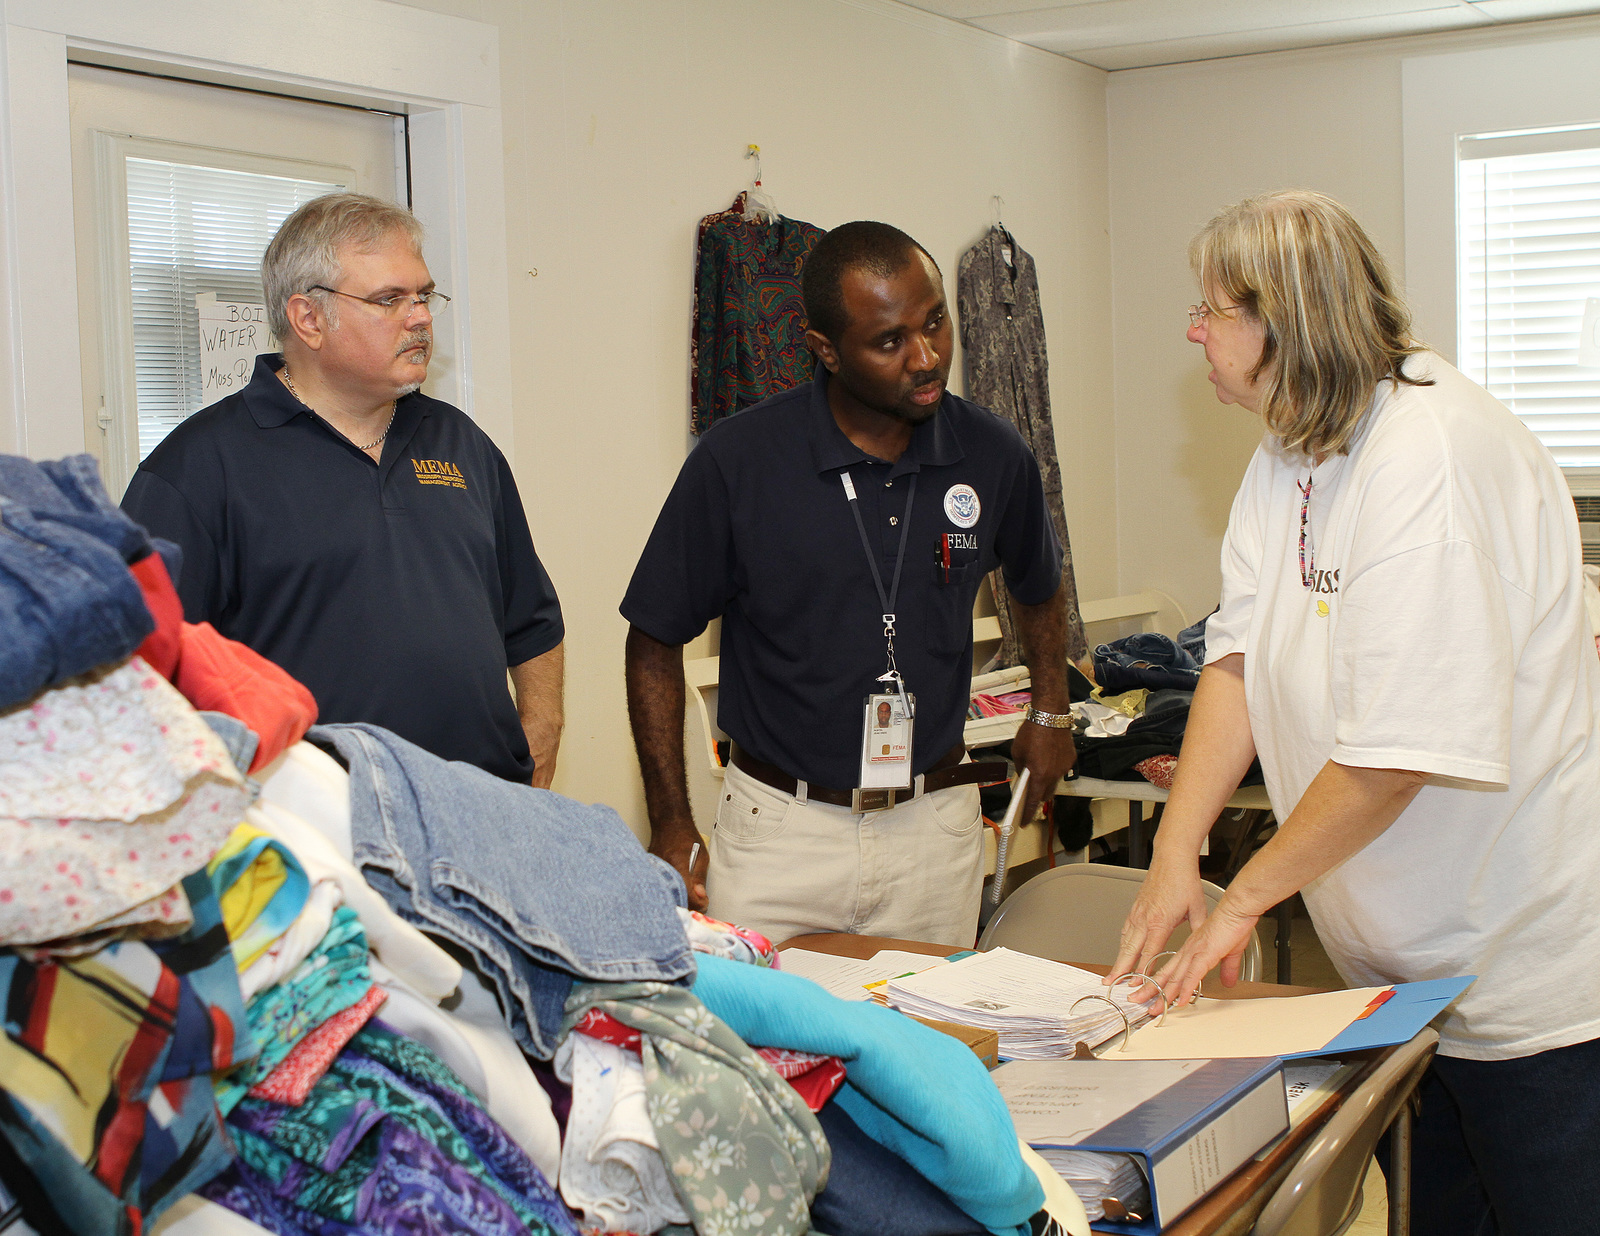 """Hurricane/Tropical Storm - Helena, Miss. , Sep. 12, 2012 -- FEMA Community Relations Specialist Jean Ones Austin, Mississippi Emergency Management Agency (MEMA) Specialist Eric Hambrick (L), speak with the president of the volunteer group """"Sisters"""" about their community outreach to support Hurricane Isaac disaster survivors with clothing, food and supplies.  FEMA and MEMA are working together to help survivors following Hurricane Isaac on August 28, 2012.  David Fine/FEMA"""